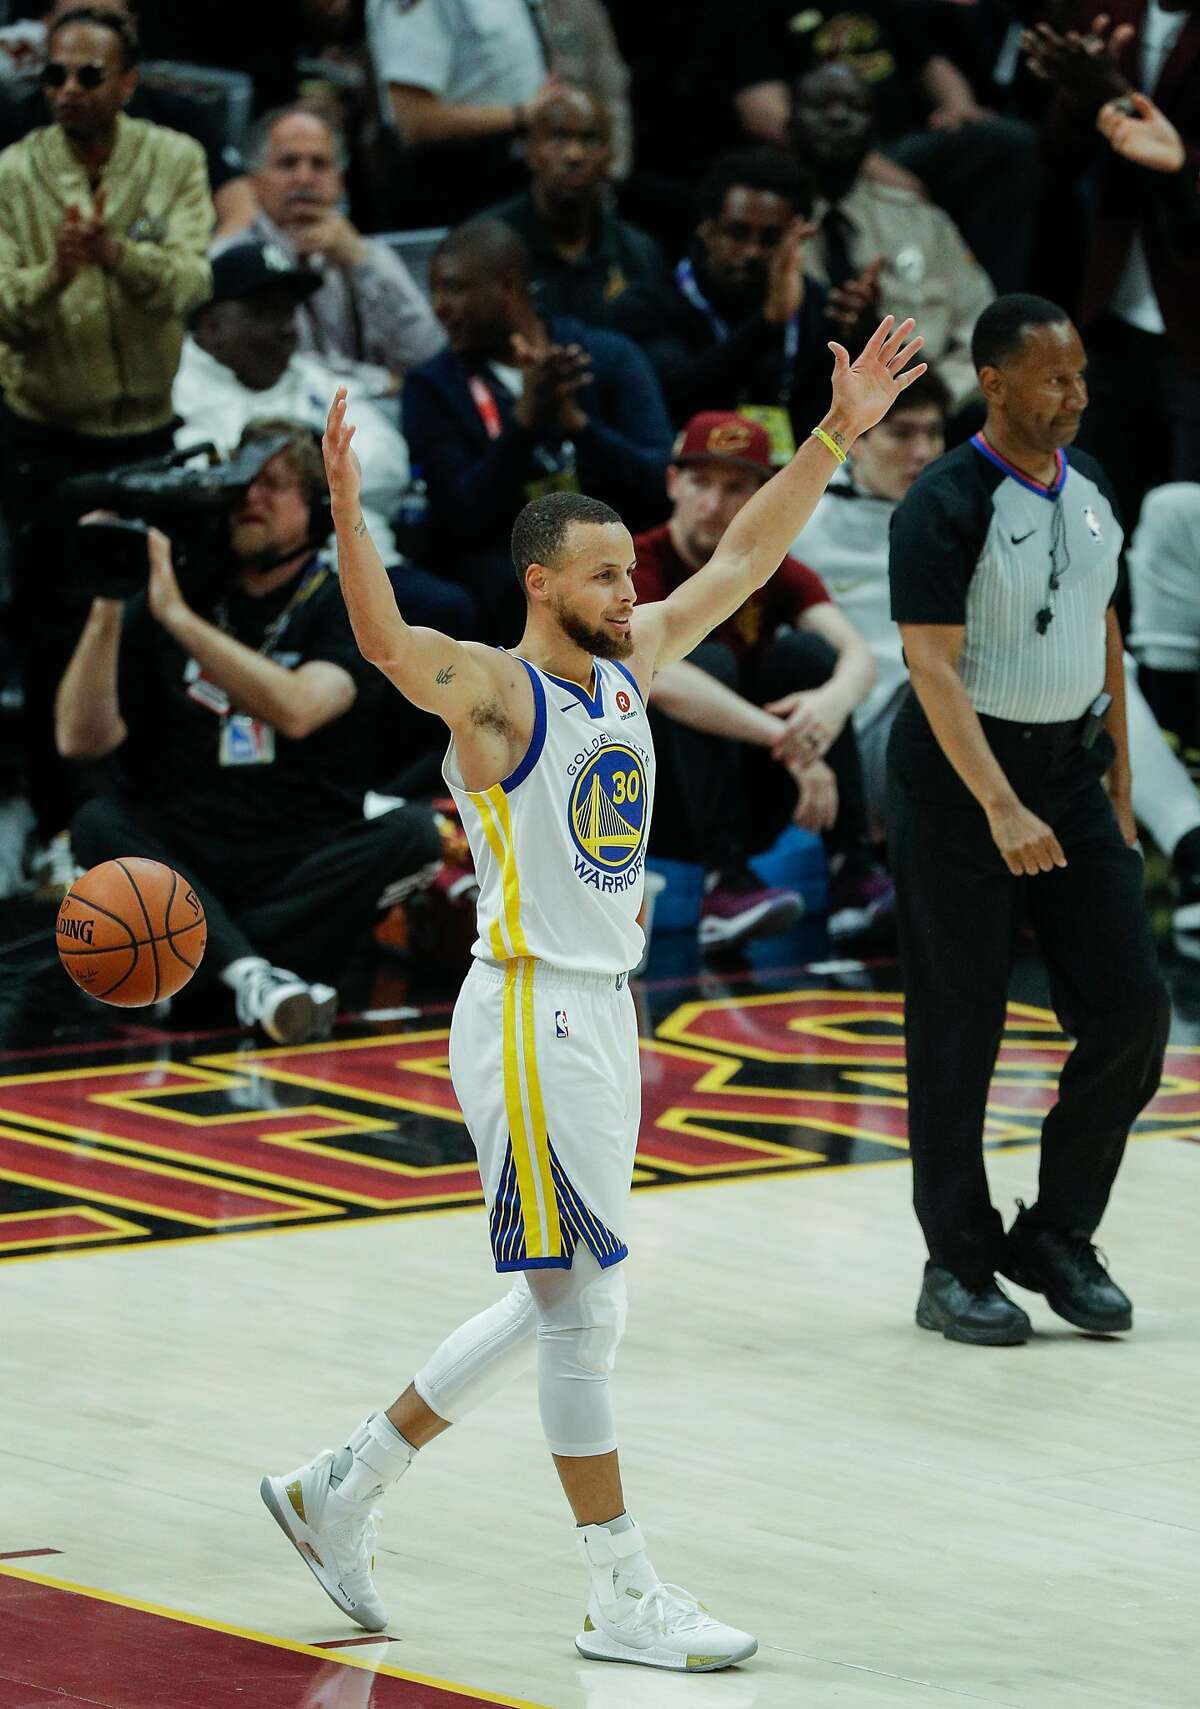 Golden State Warriors' Stephen Curry reacts in the first quarter during game 4 of The NBA Finals between the Golden State Warriors and the Cleveland Cavaliers at Oracle Arena on Friday, June 8, 2018 in Cleveland, Ohio.